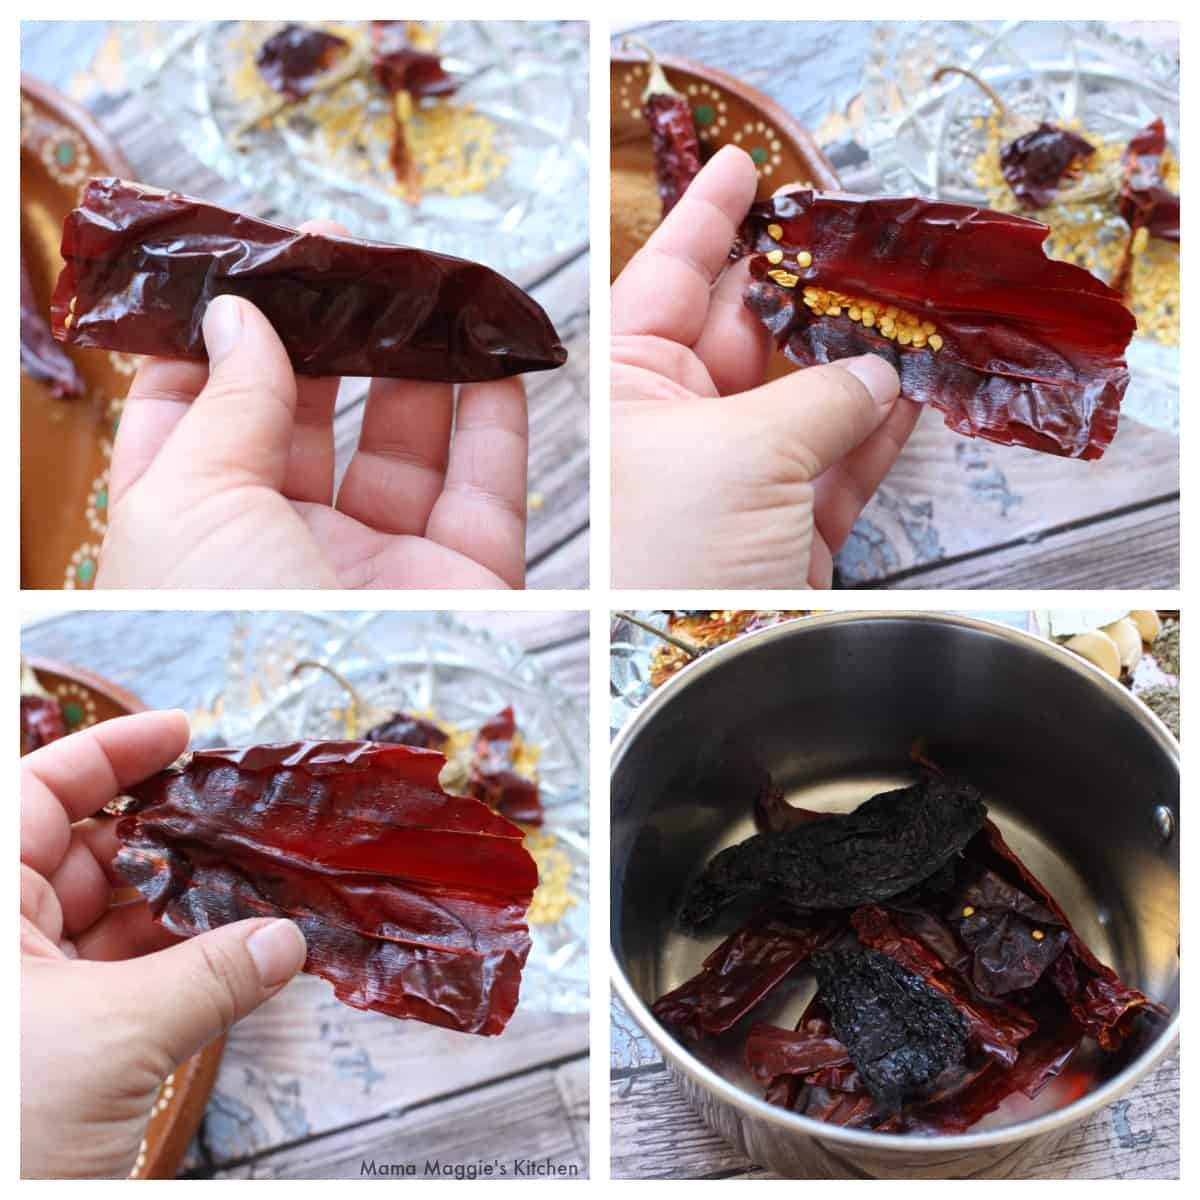 A collage showing how to remove the seeds and stems on a dried chile.